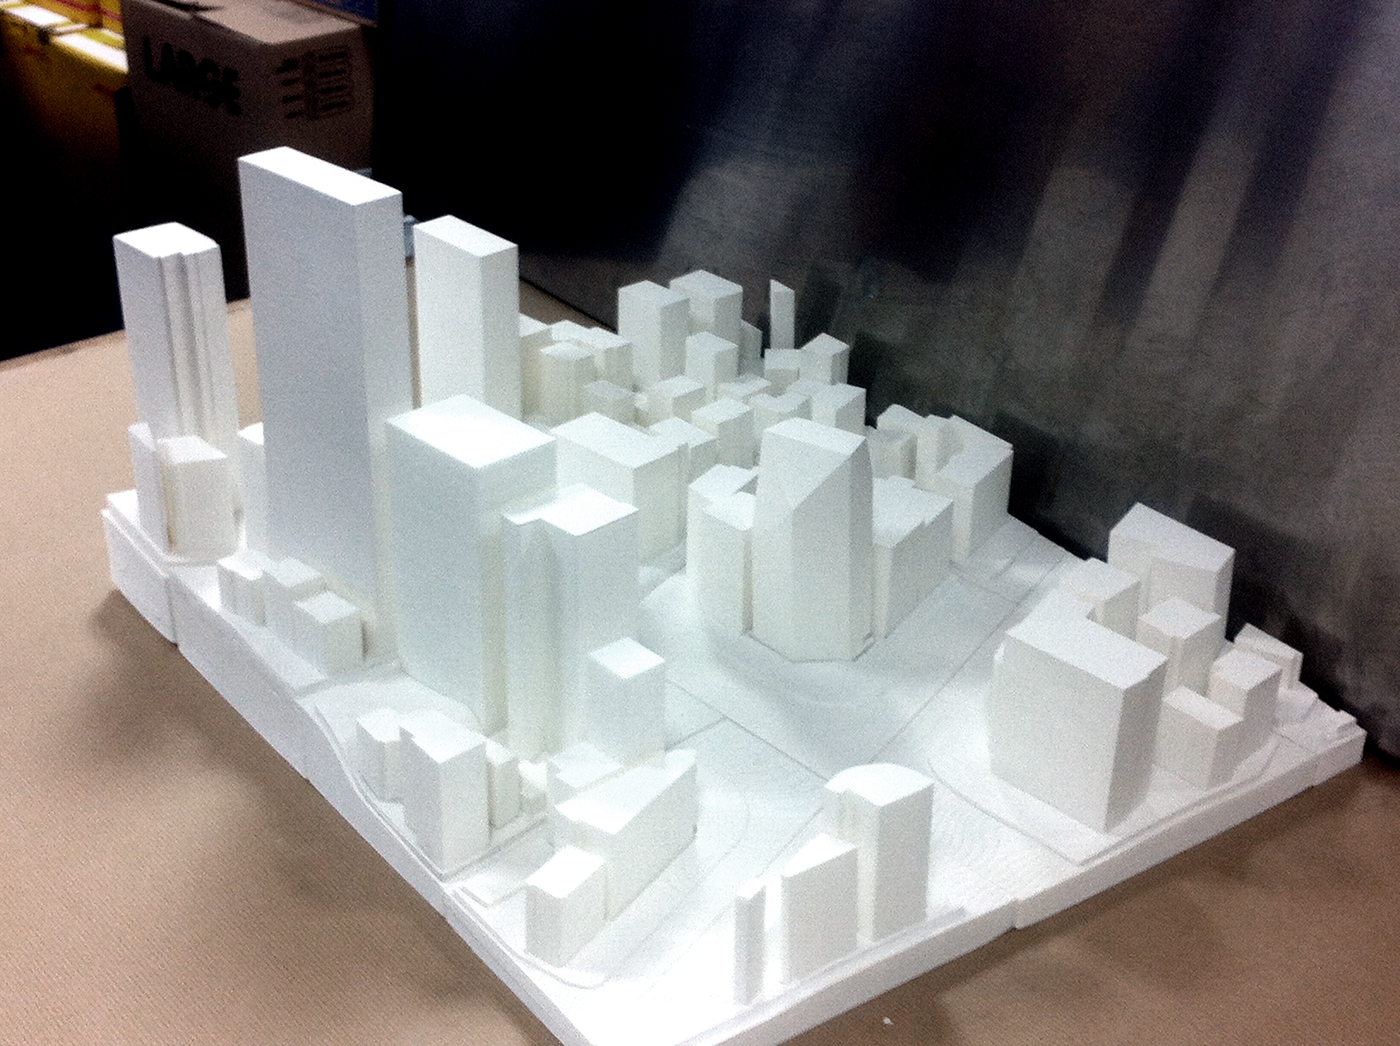 3D Printed Architectural Model on Behance